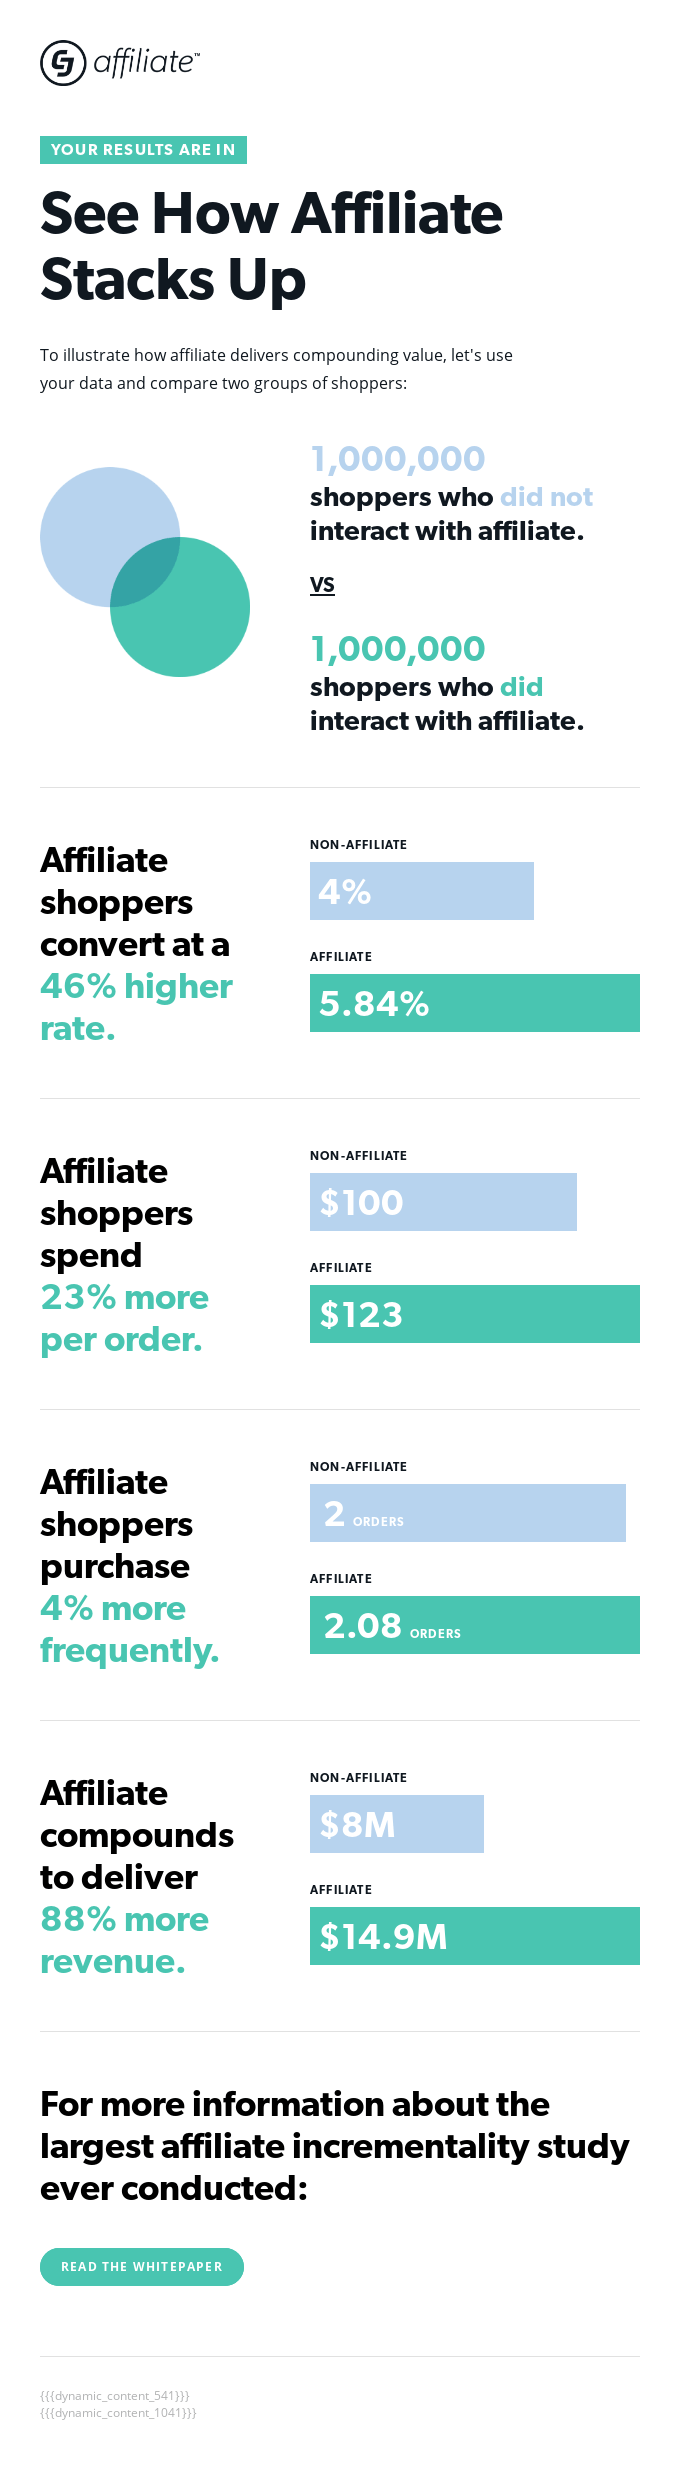 Your Affiliate Incrementality Results Are In